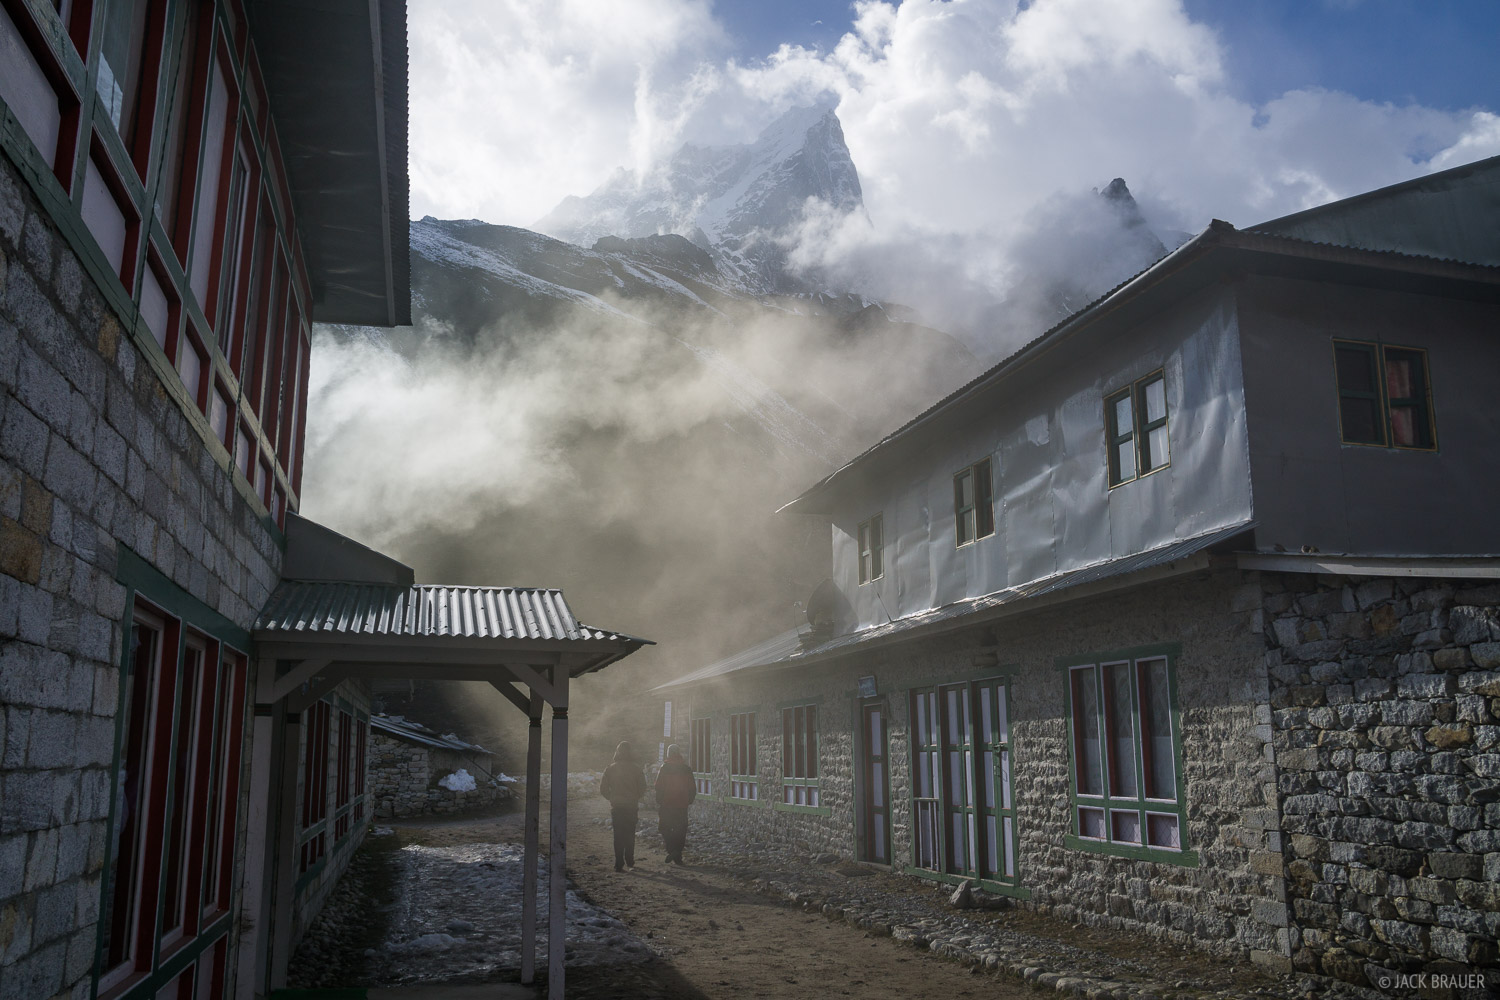 Smoke from yak dung ovens pours out of a teahouse in Pheriche.